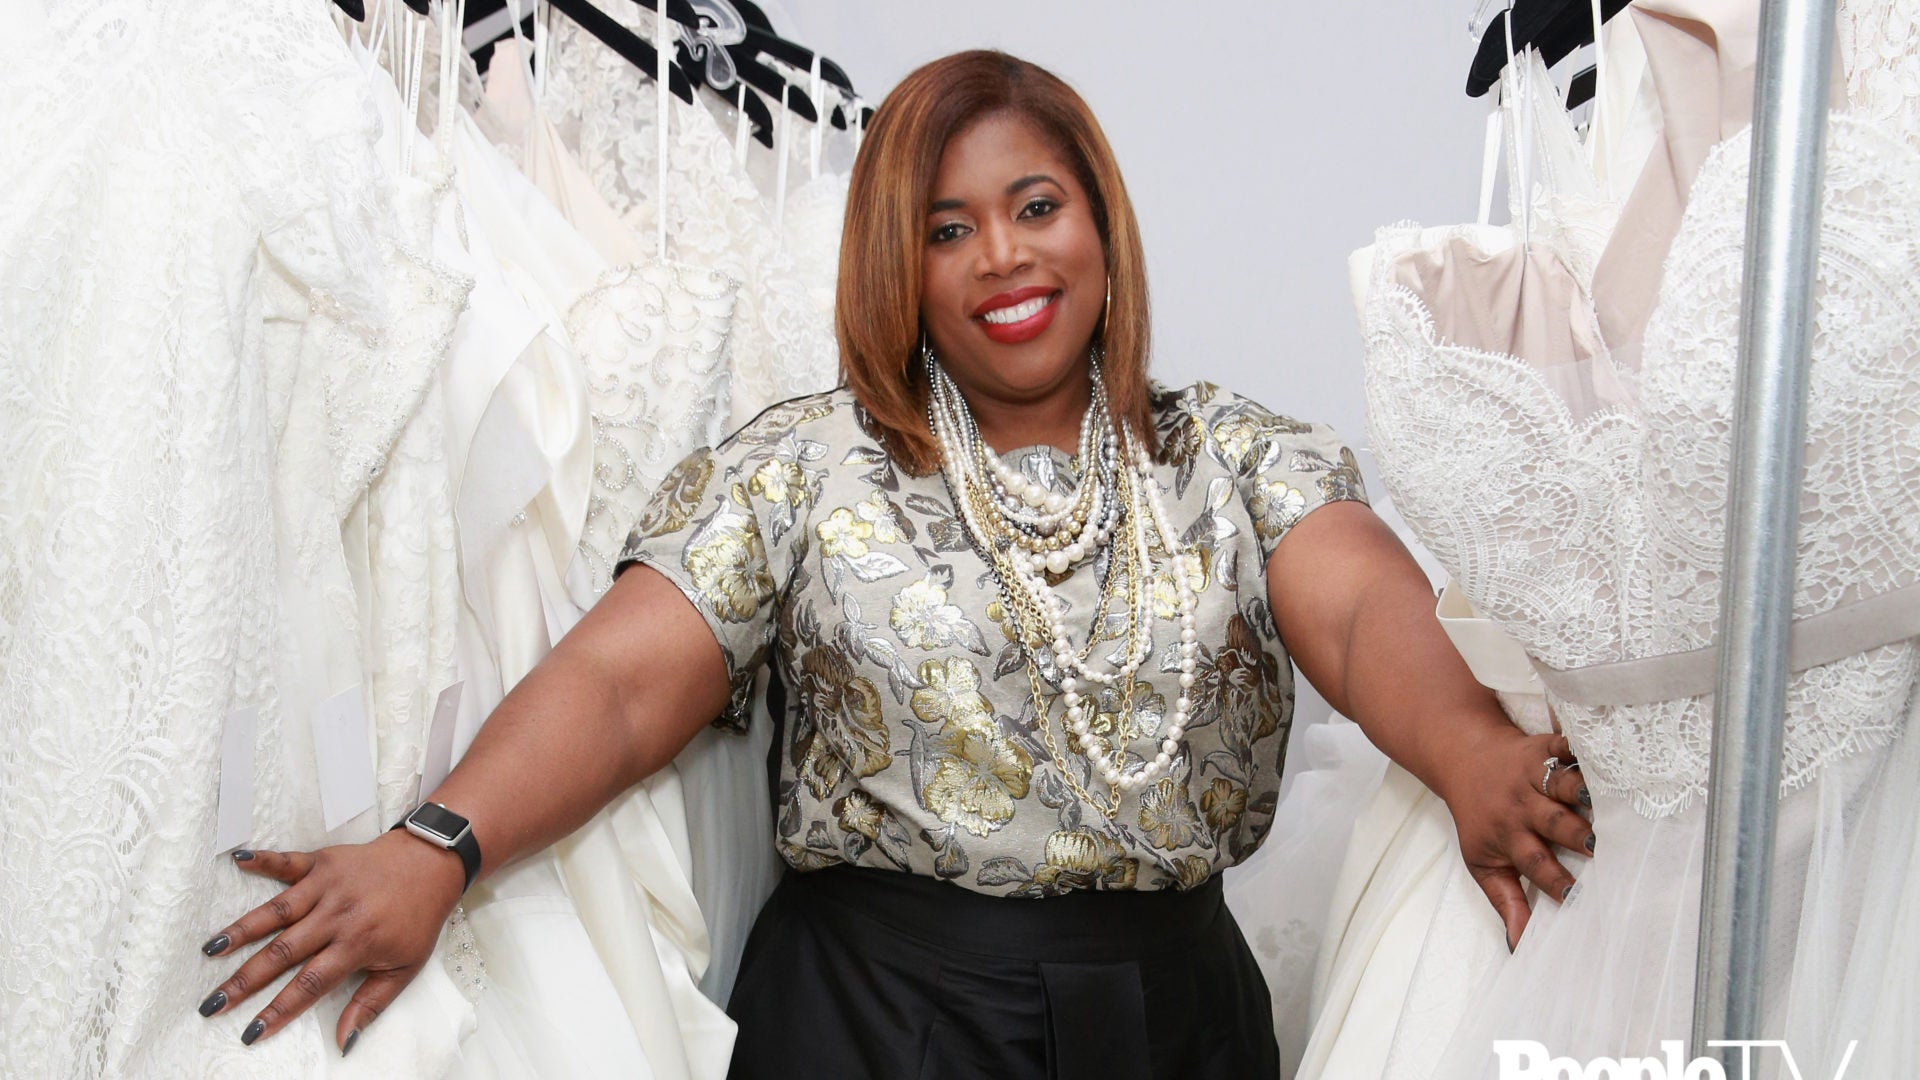 This Chicago Bridal Boutique Owner Created a Stylish and Body Positive Haven For Curvy and Plus Size Brides